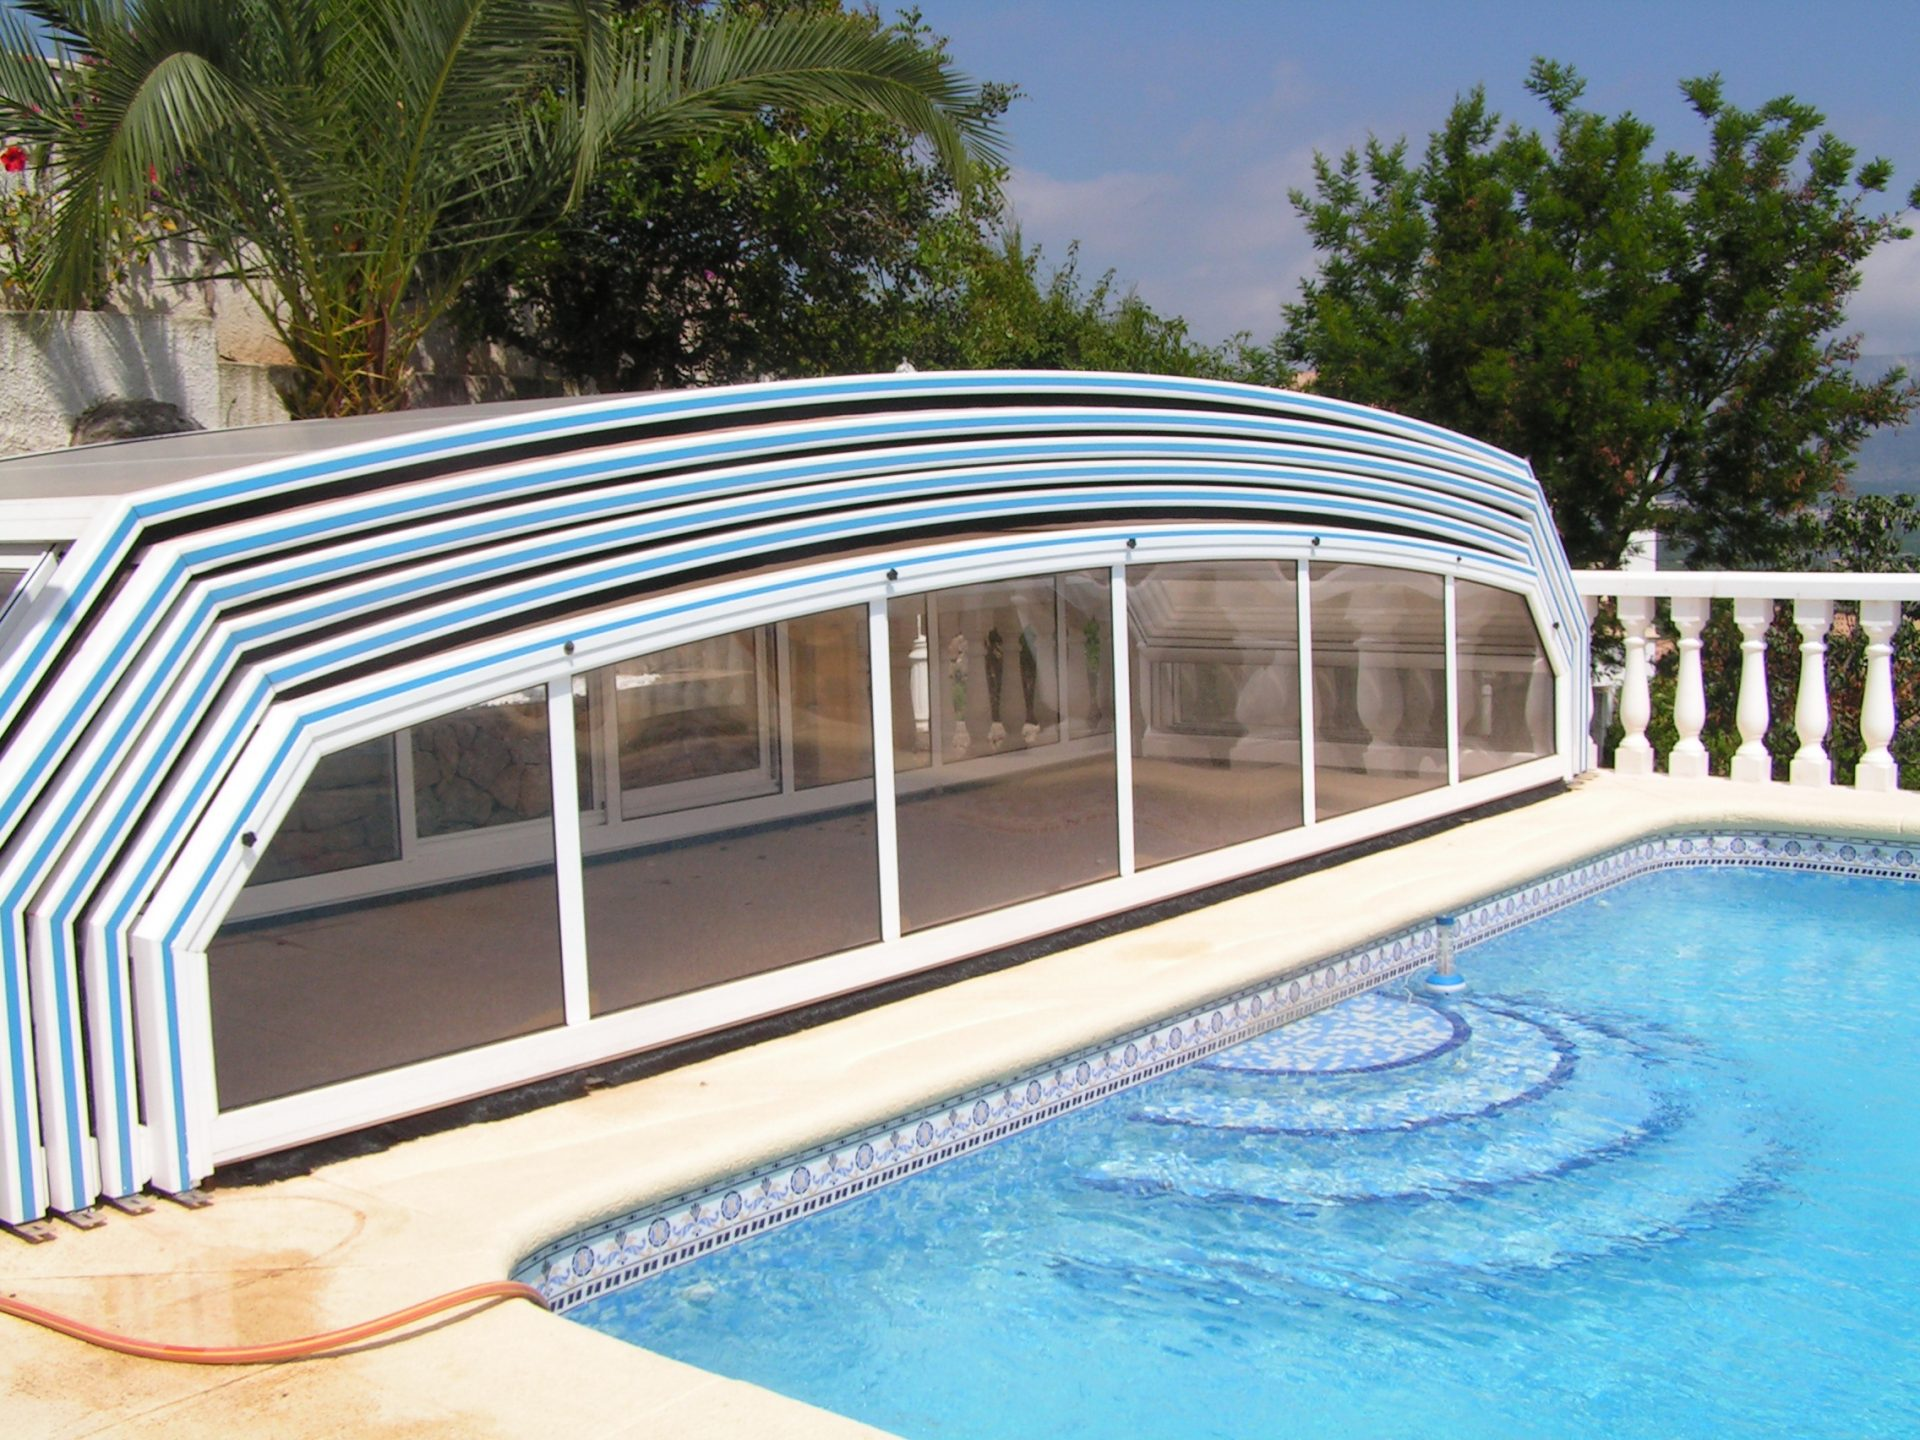 Abri piscine paris t lescopique sur roulette for Verin abri piscine